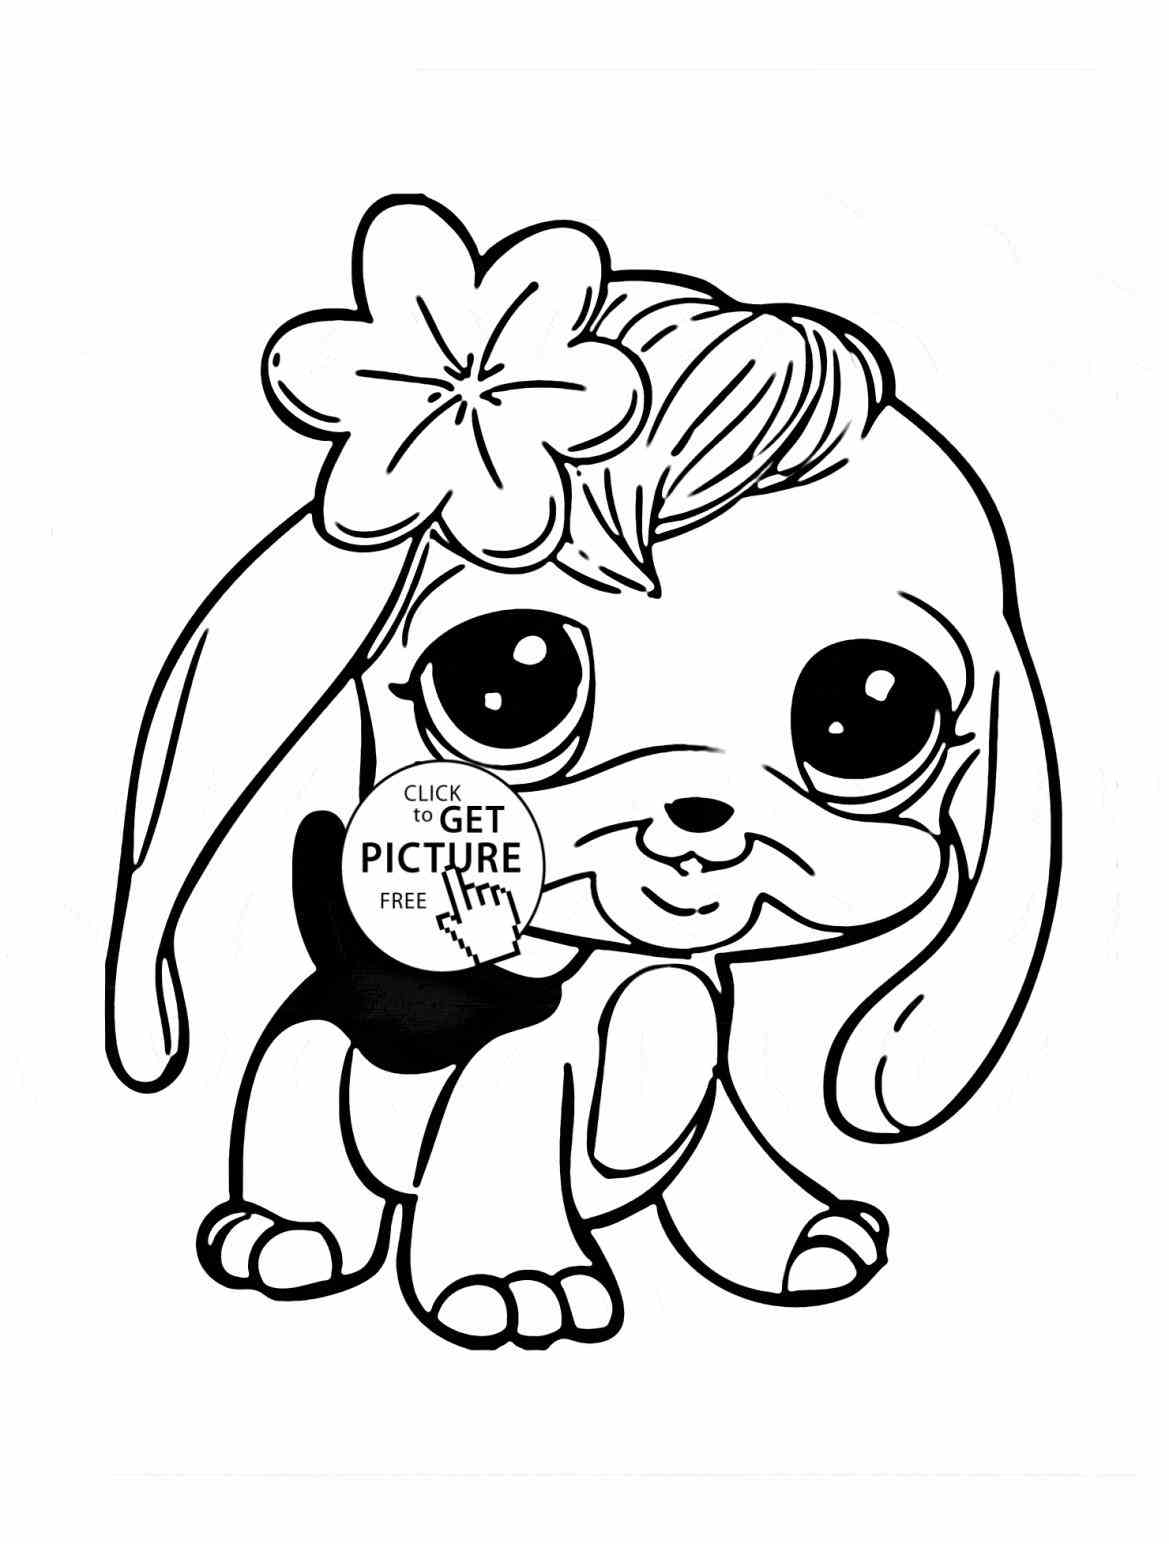 coloring zoo animals clipart black and white zoo animals clipart black and white free download on and animals coloring zoo clipart black white